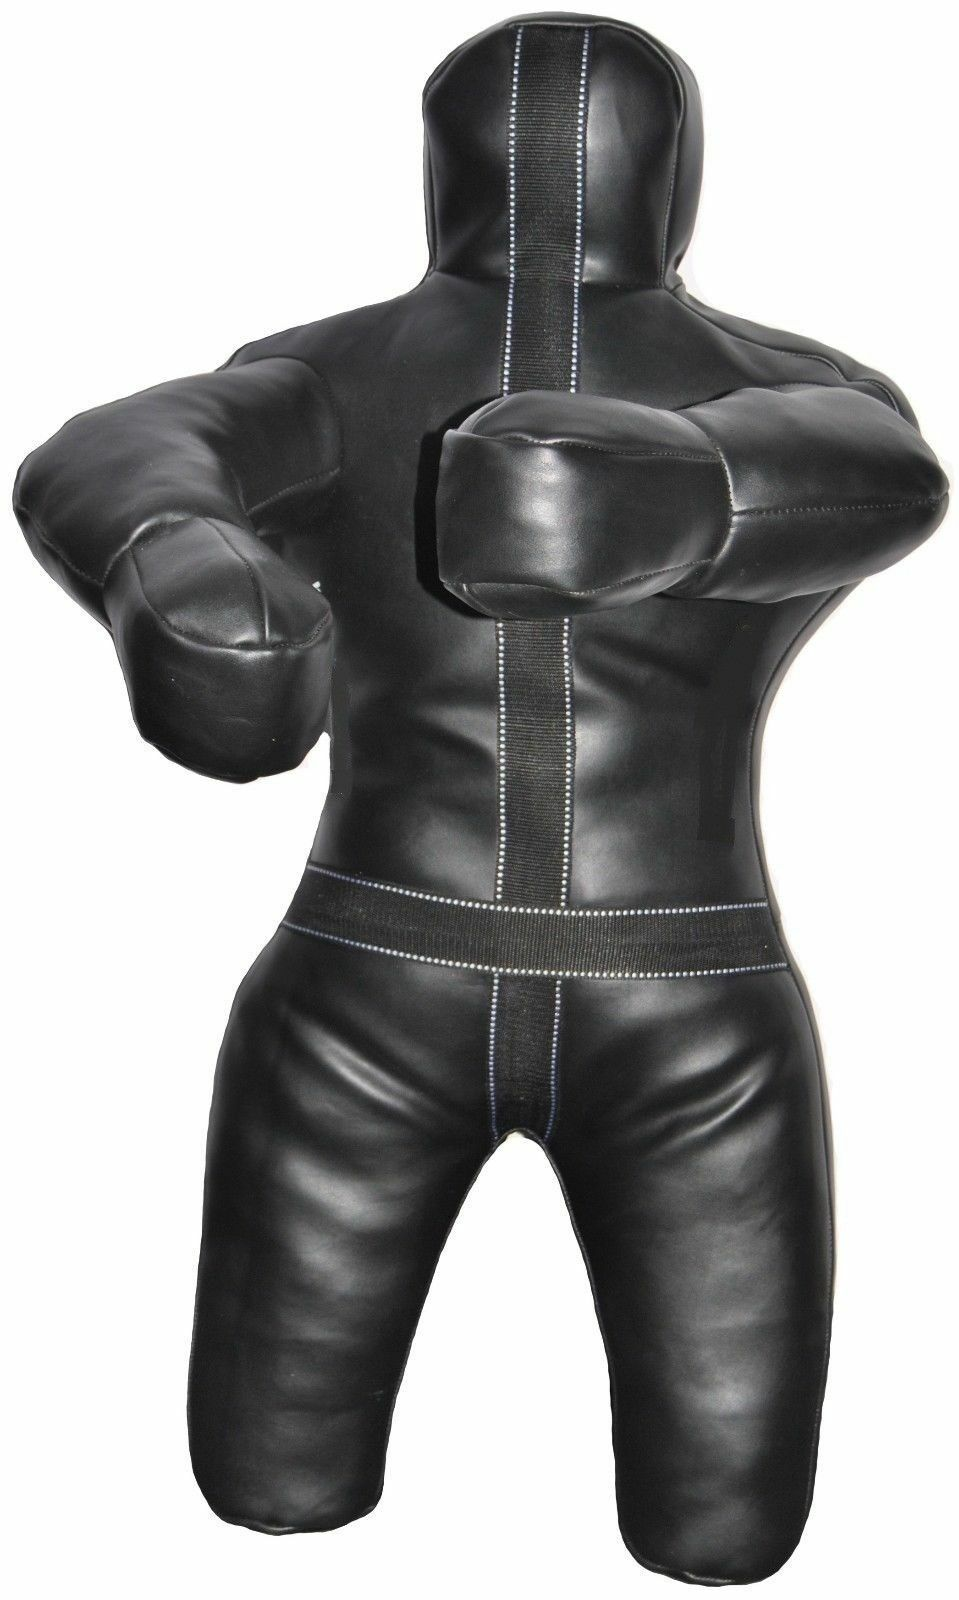 M P TECH THROWING WRESTLING  DUMMY, MAYA-HIDE LEATHER MAGIC UPDATED GRAPPLING BAG  manufacturers direct supply